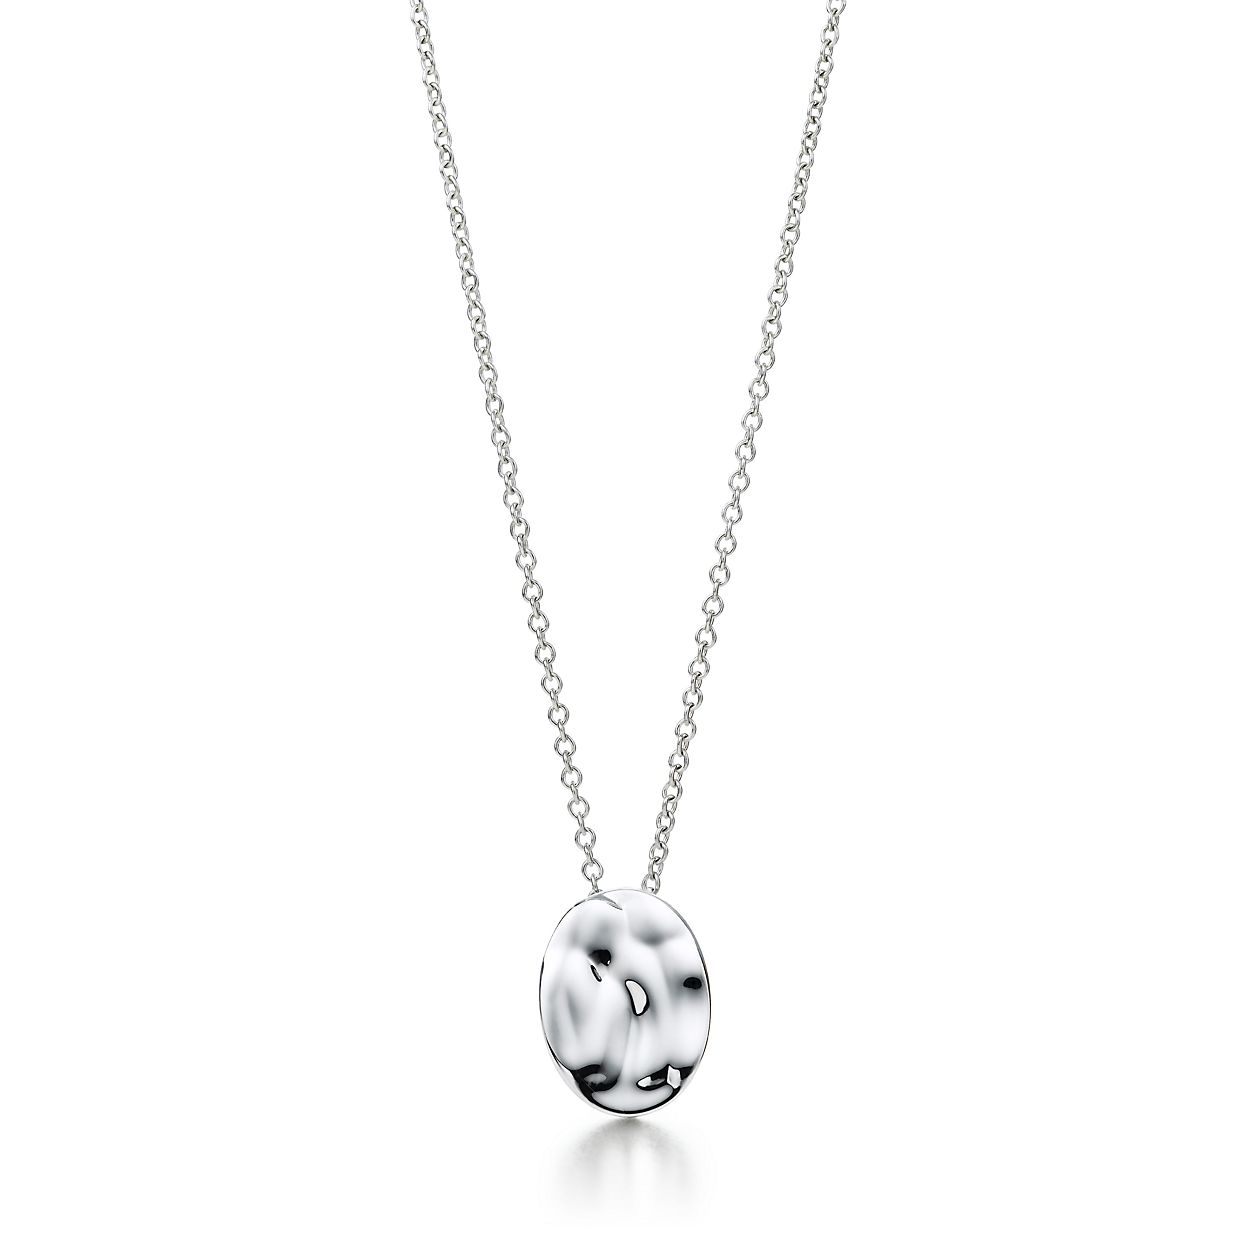 emerson products ssn g gemini necklace victoria pendant